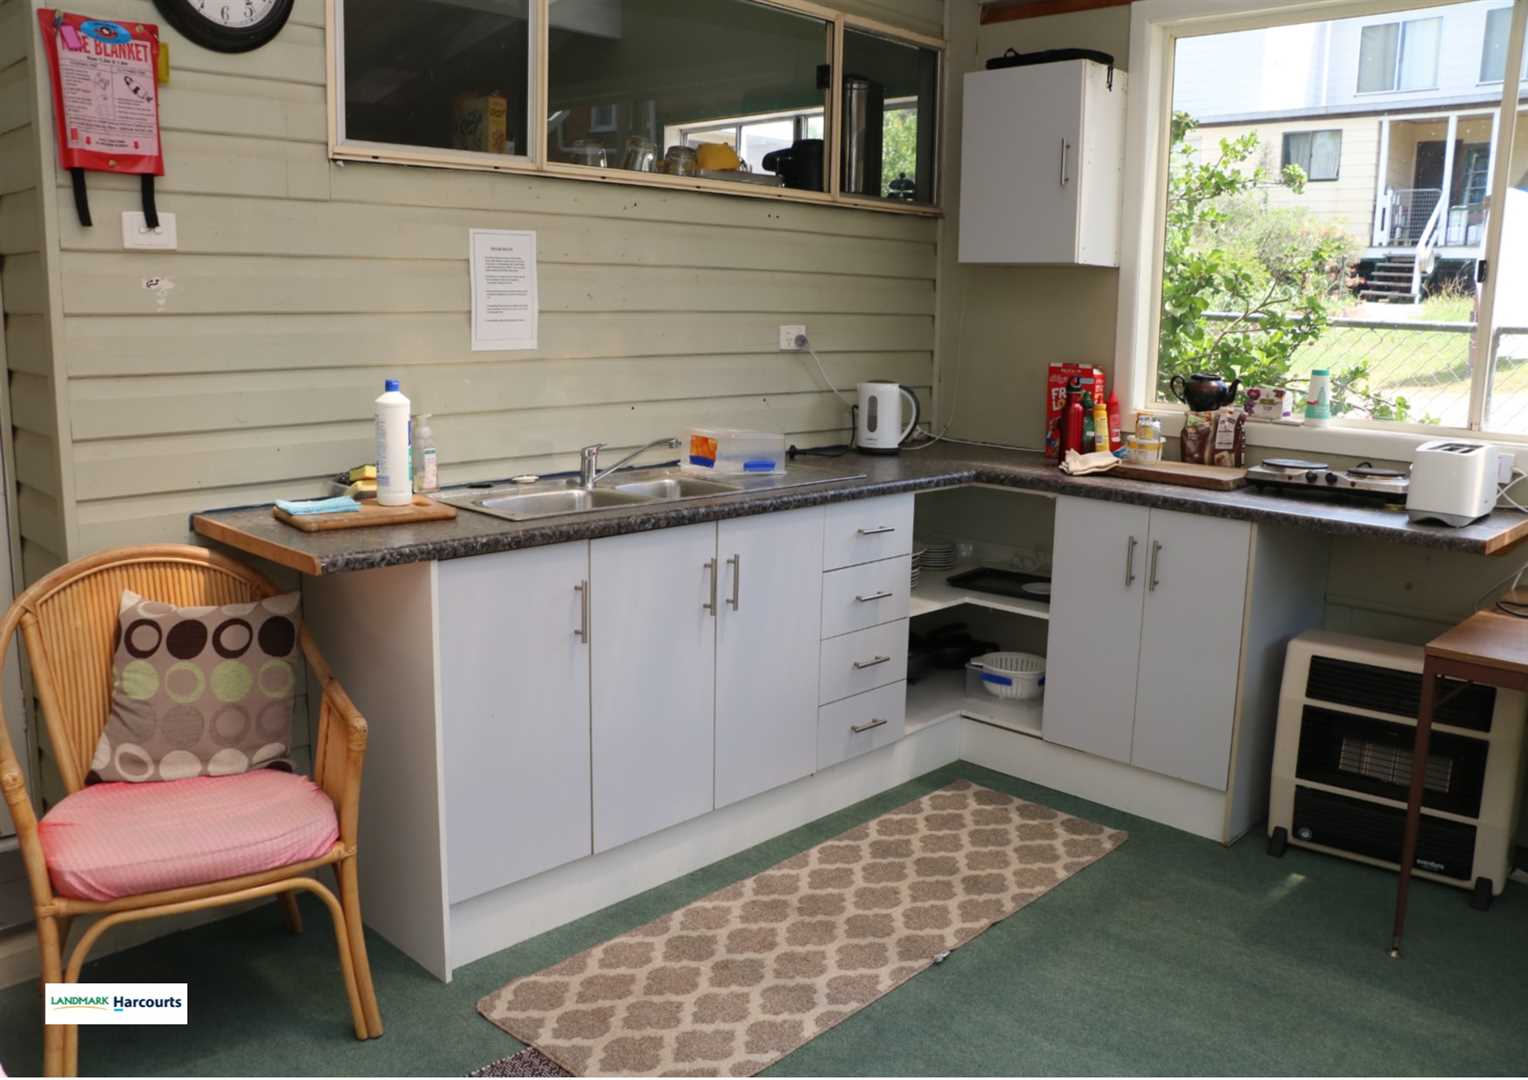 One of the guest kitchens